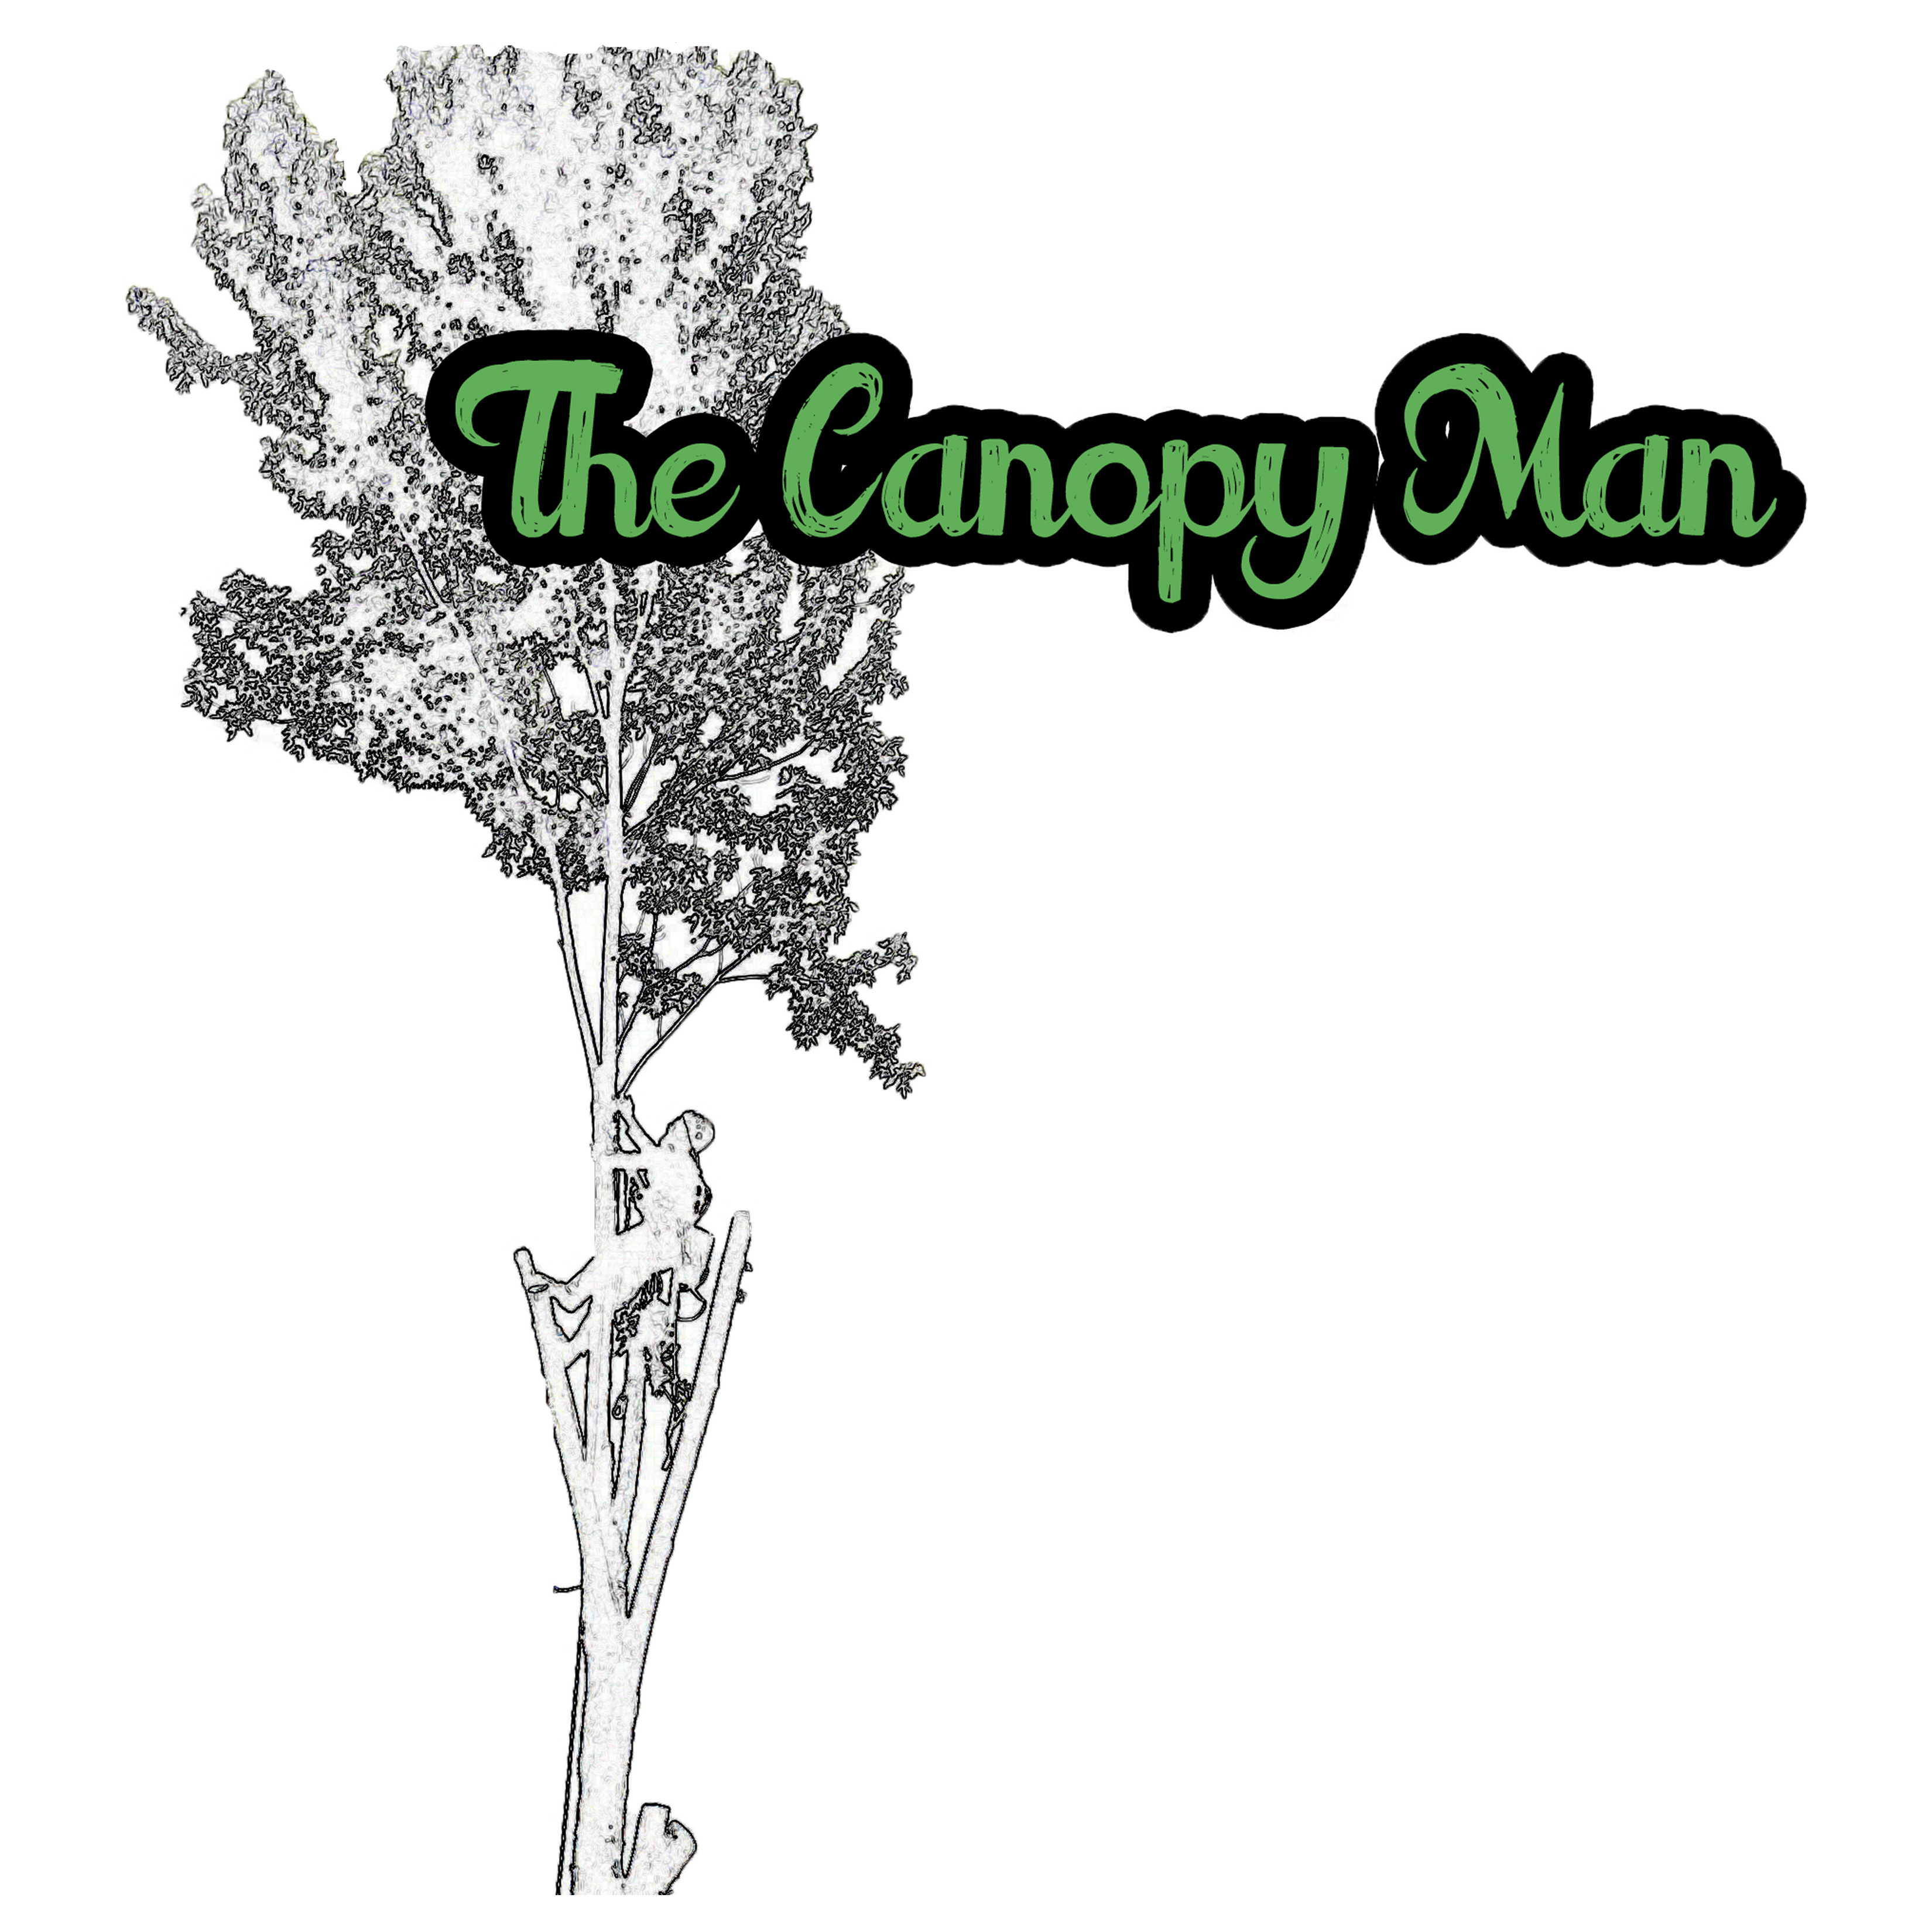 The Canopy Man